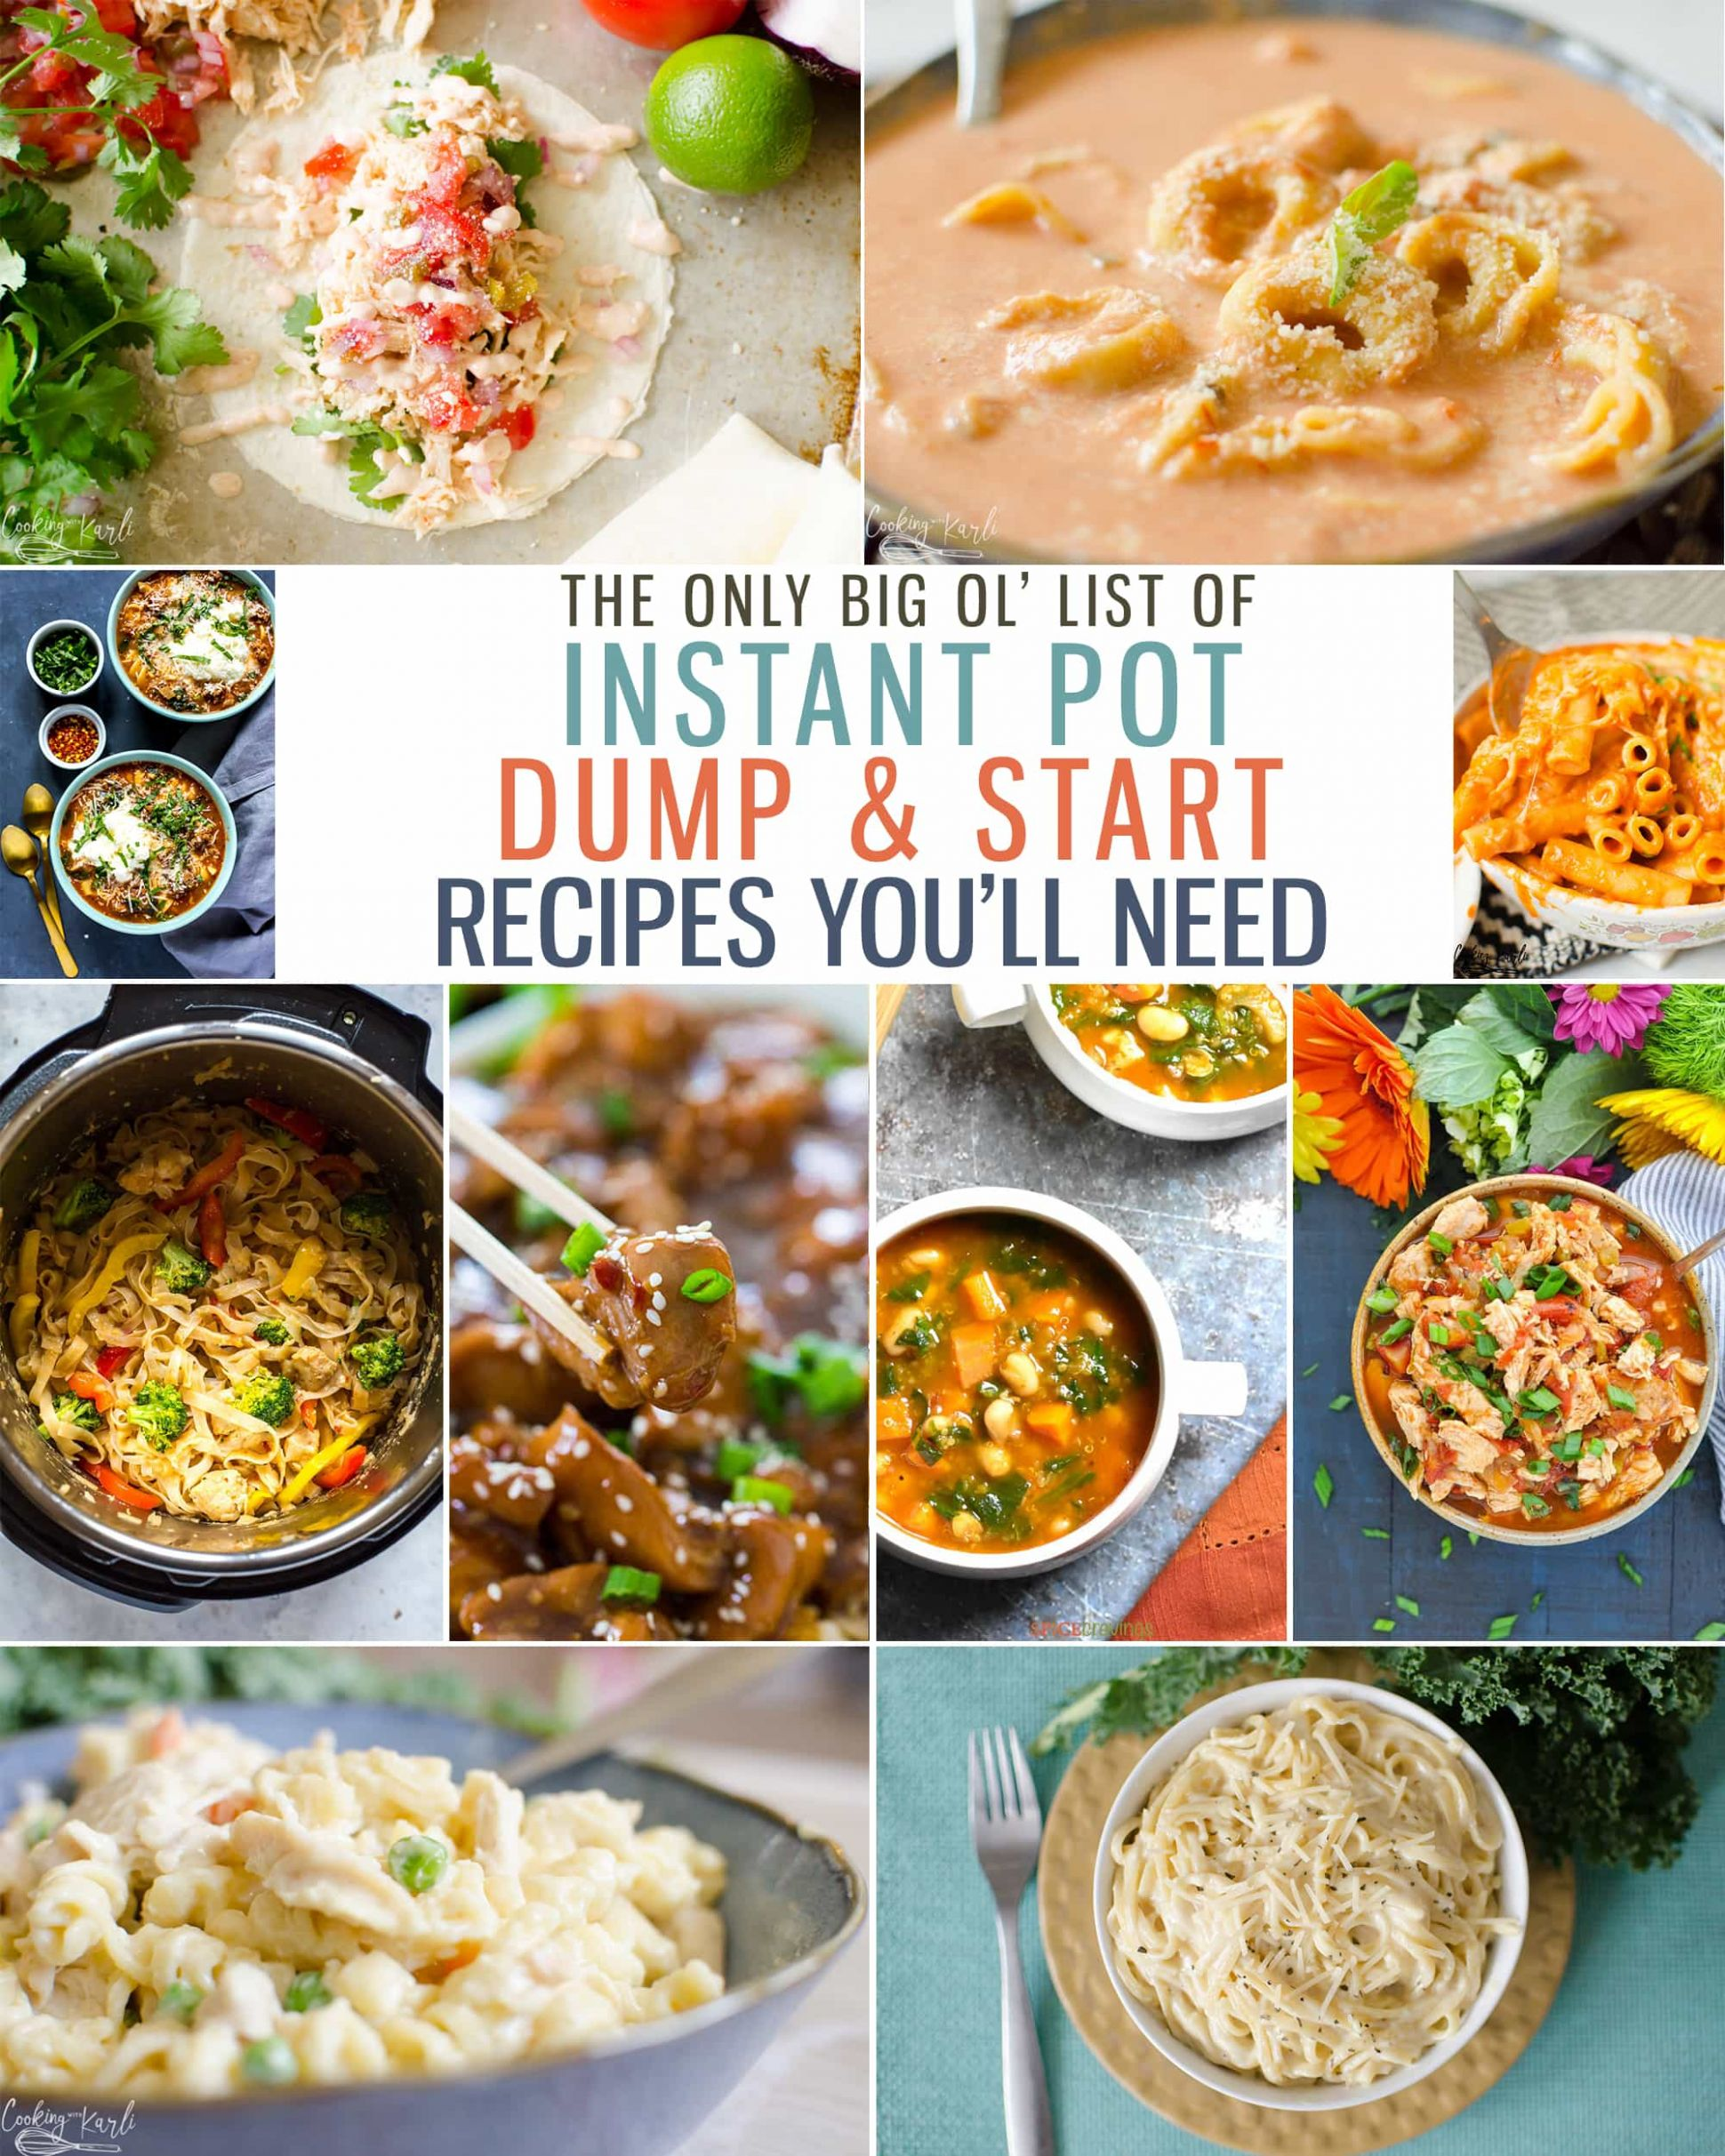 Top 11 Instant Pot Dump and Start Recipes - Cooking With Karli - Recipes Cooking Recipes